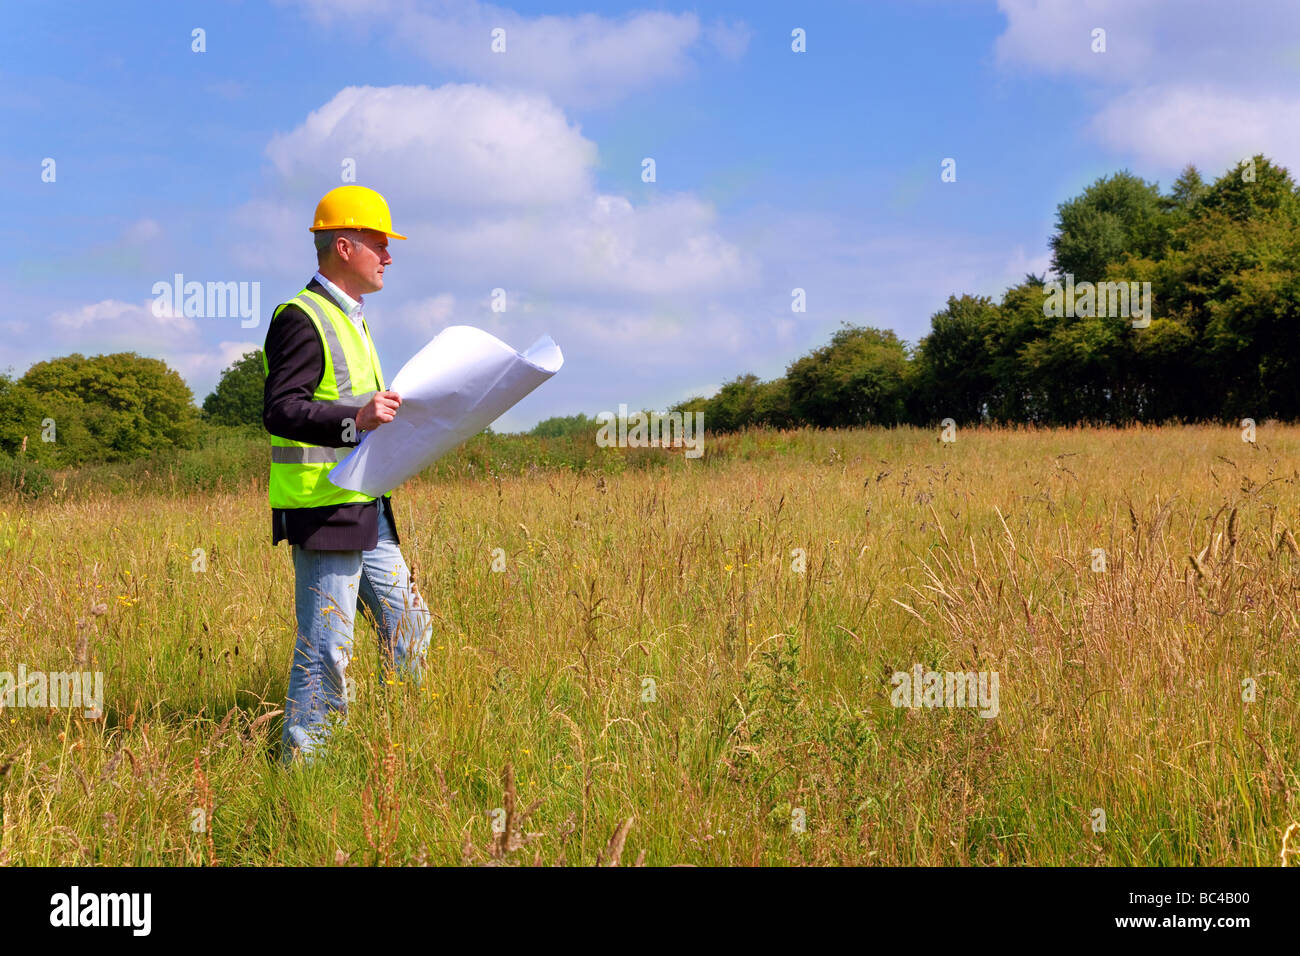 Architect wearing site safety gear and holding plans surveying a new building plot - Stock Image